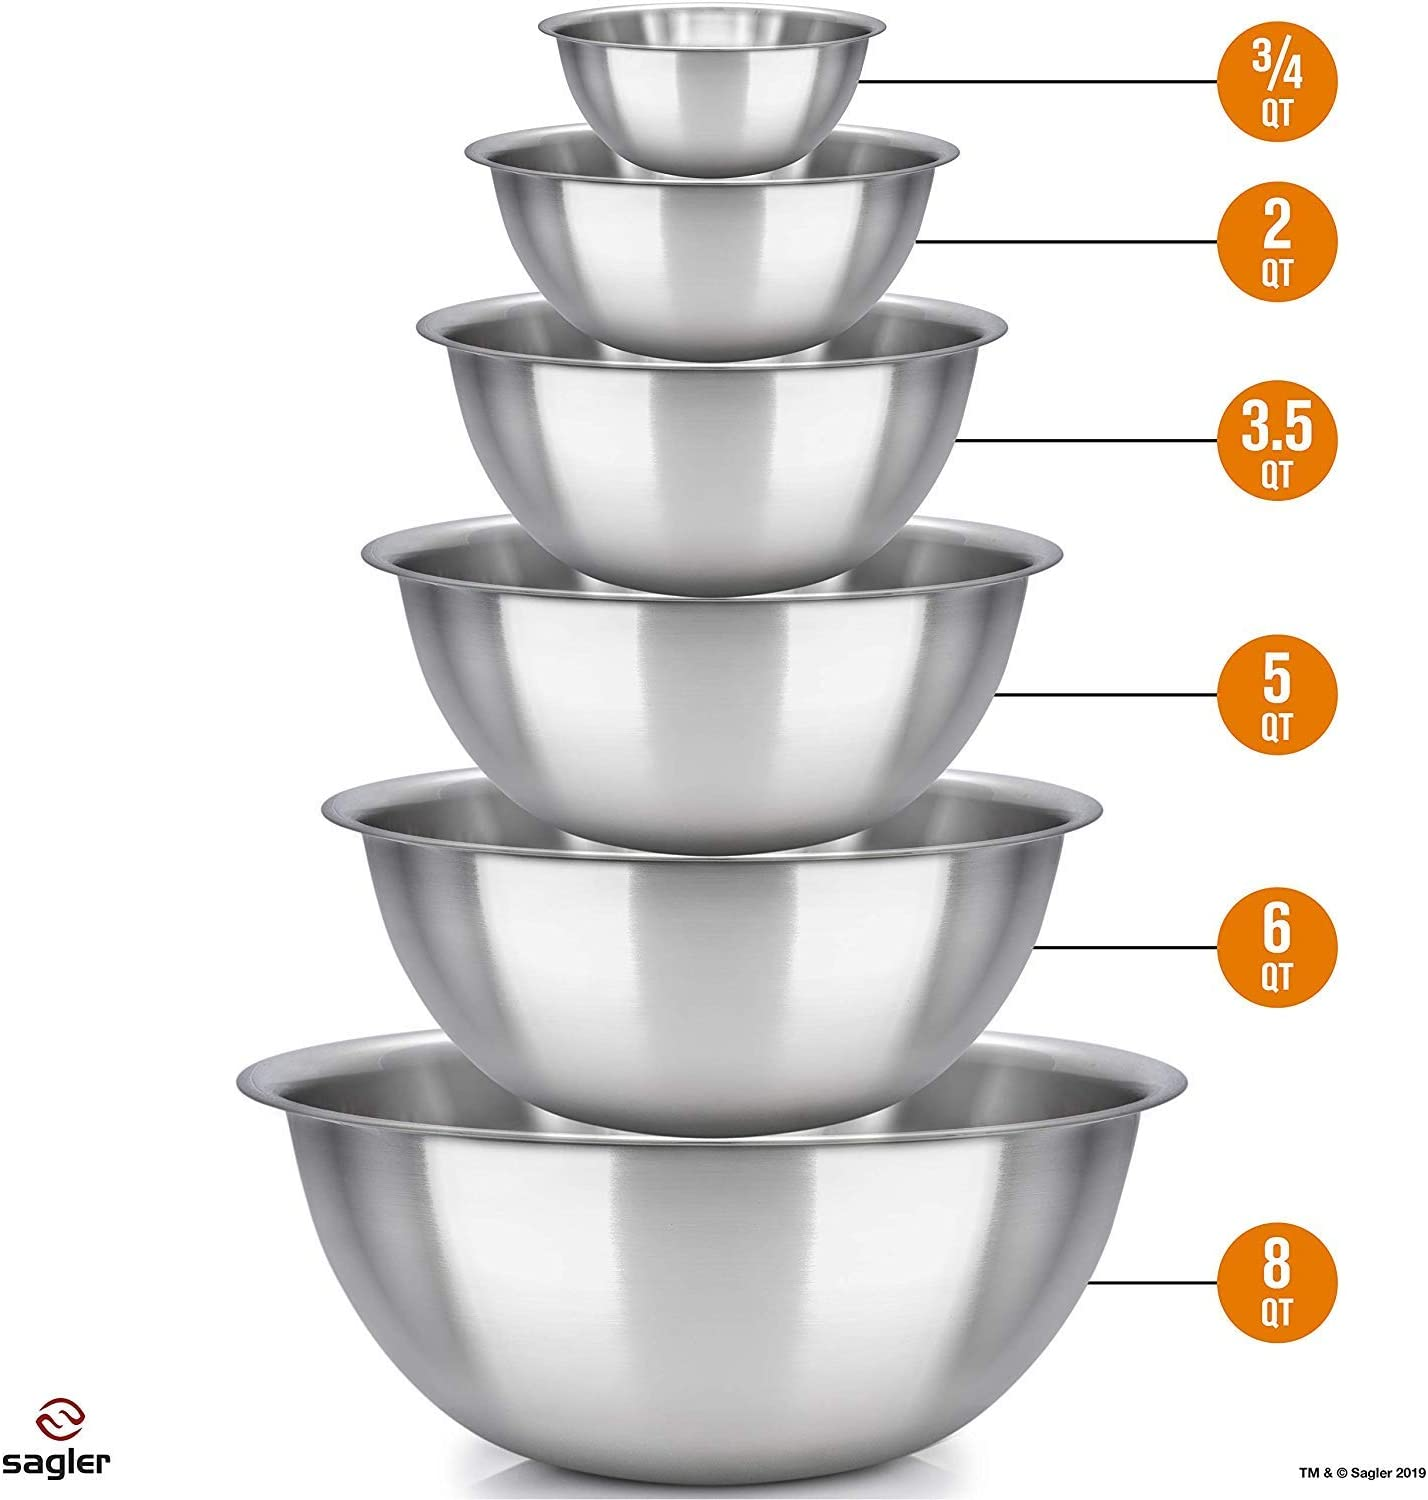 Set of 6 - stainless steel mixing bowls - Polished Mirror kitchen bowls - Set Includes ¾, 2, 3.5, 5, 6, 8 Quart